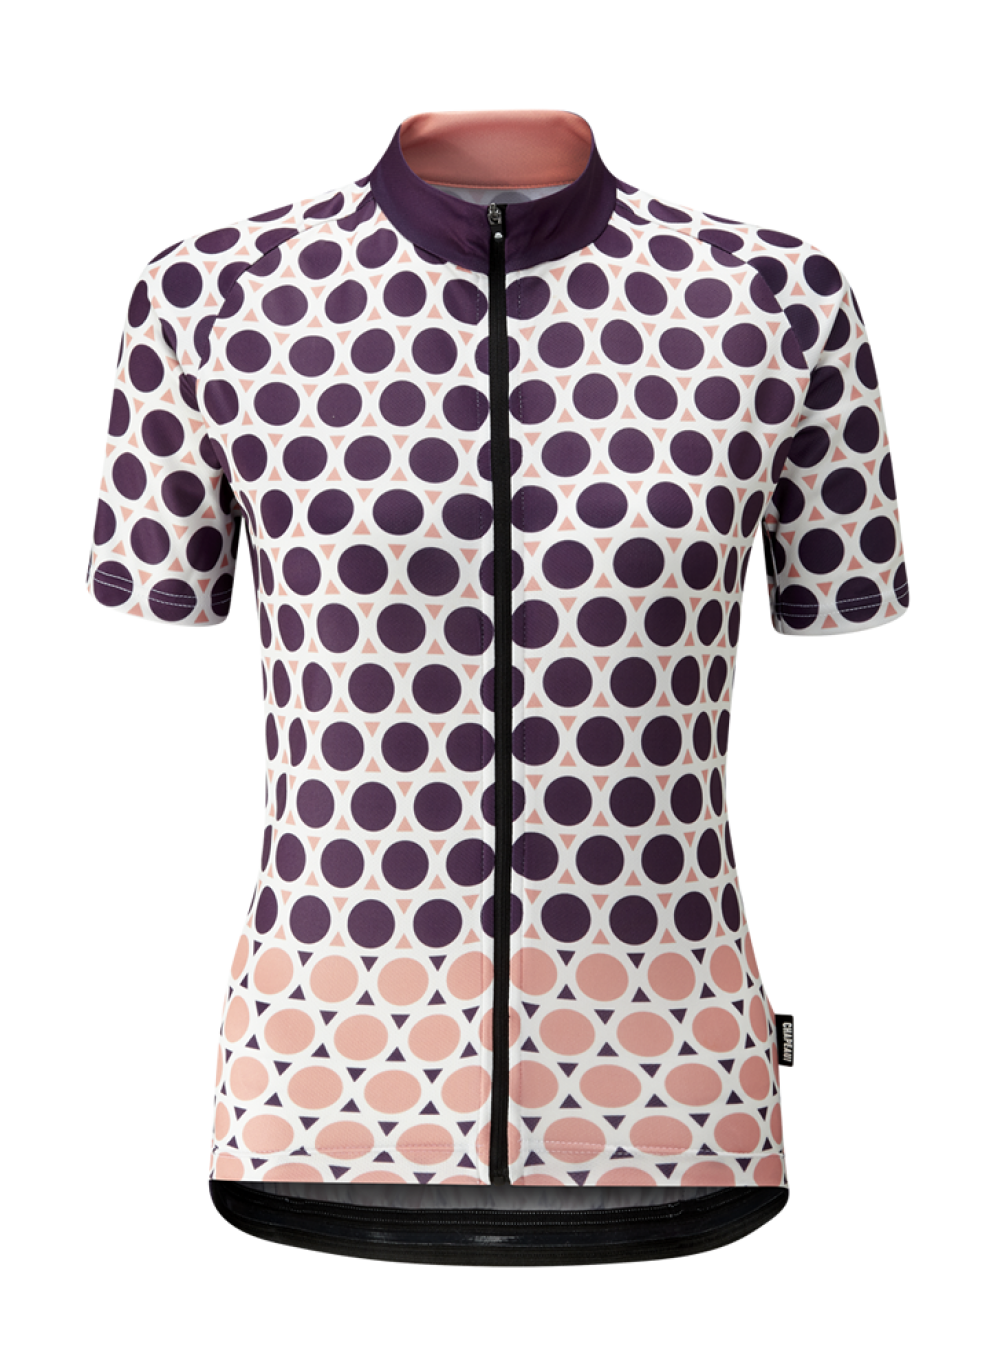 chapeau__ladies_madeleine_geo_polka_jersey_purple_moon_c1255_front_copy_4.png